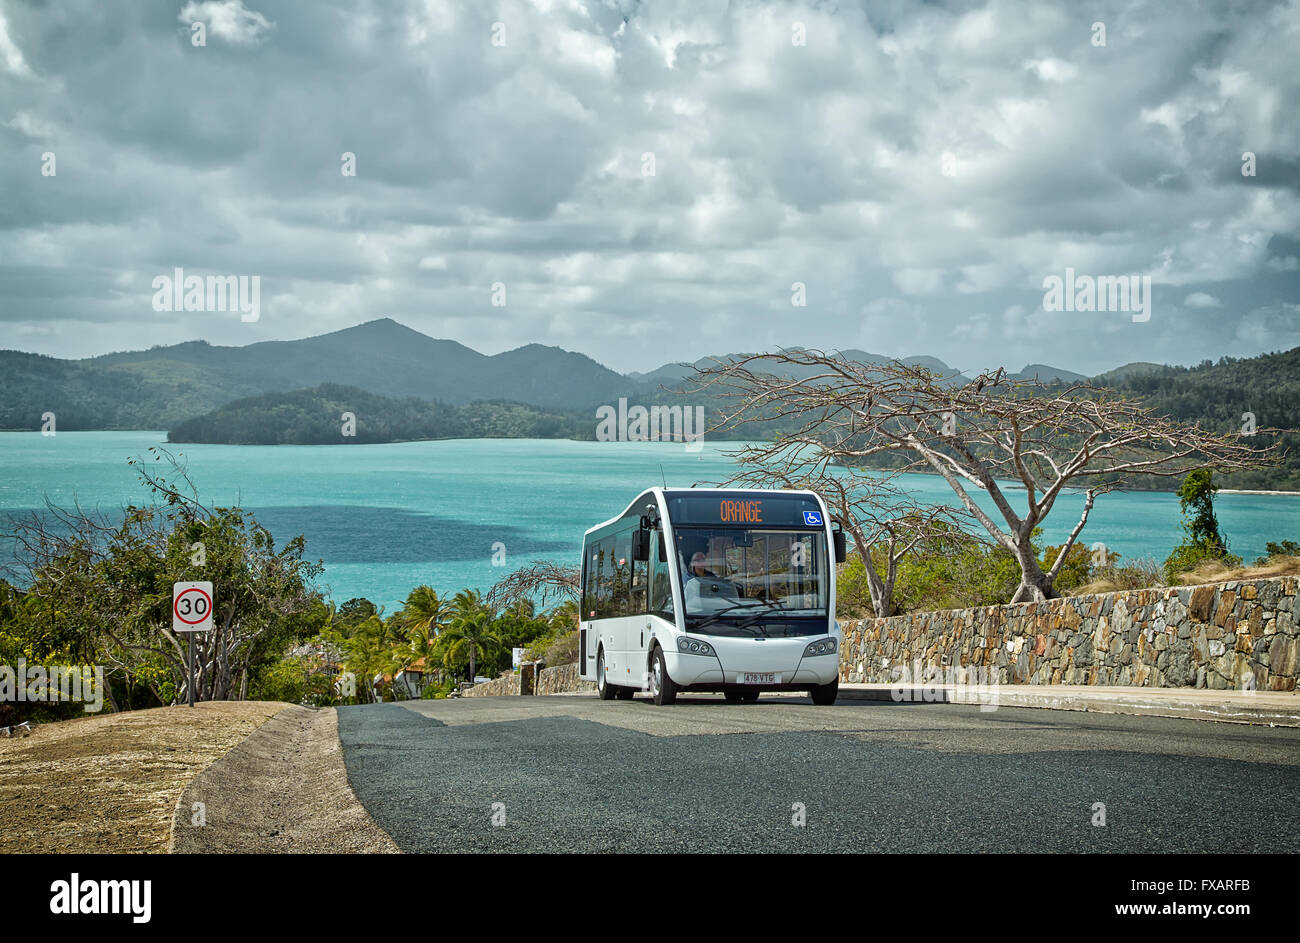 A complimentary bus service conveys holidaymakers around Hamilton island. Golf buggies and buses are the only vehicles - Stock Image